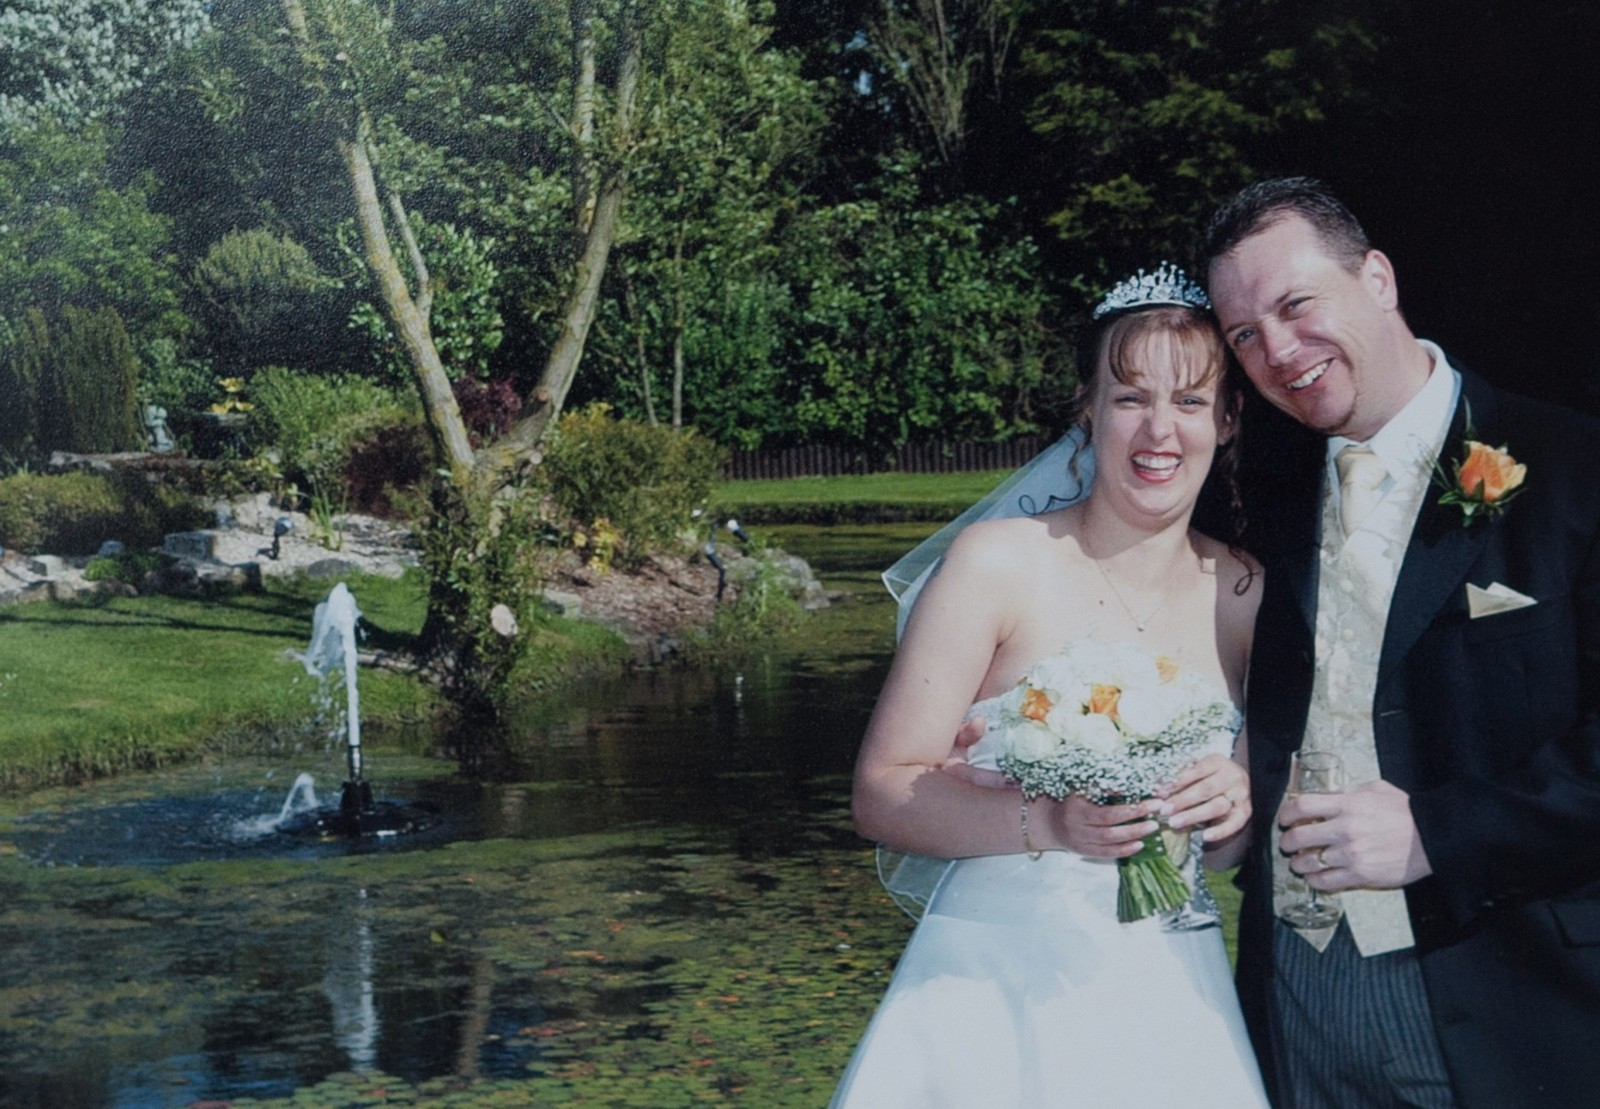 Collect picture. Liz Linham and Adrian Linham at their wedding in May 2007 at Weston Super Mare,Somerset England. Linham's ex husband Adrian Linham, 43, has been sentenced for bigamy after running away to get married. See SWNS story SWRAT: A love rat bigamist jetted out to Mexico to marry his second wife on the same beach where he honeymooned with the first - and she only found out about it on FACEBOOK. Callous Adrian Linham, 43, secretly dated Hayley Totterdell for three years while his loyal wife of seven years Liz, 37, thought their marriage was running smoothly. He frequently told Liz he was going to Bangor, south Wales, to work for weeks at a time - but was actually living just 16 miles away with Hayley. Then he secretly flew out to a paradise beach to wed Hayley in front of her family and friends - who were all blissfully unaware he was already married.